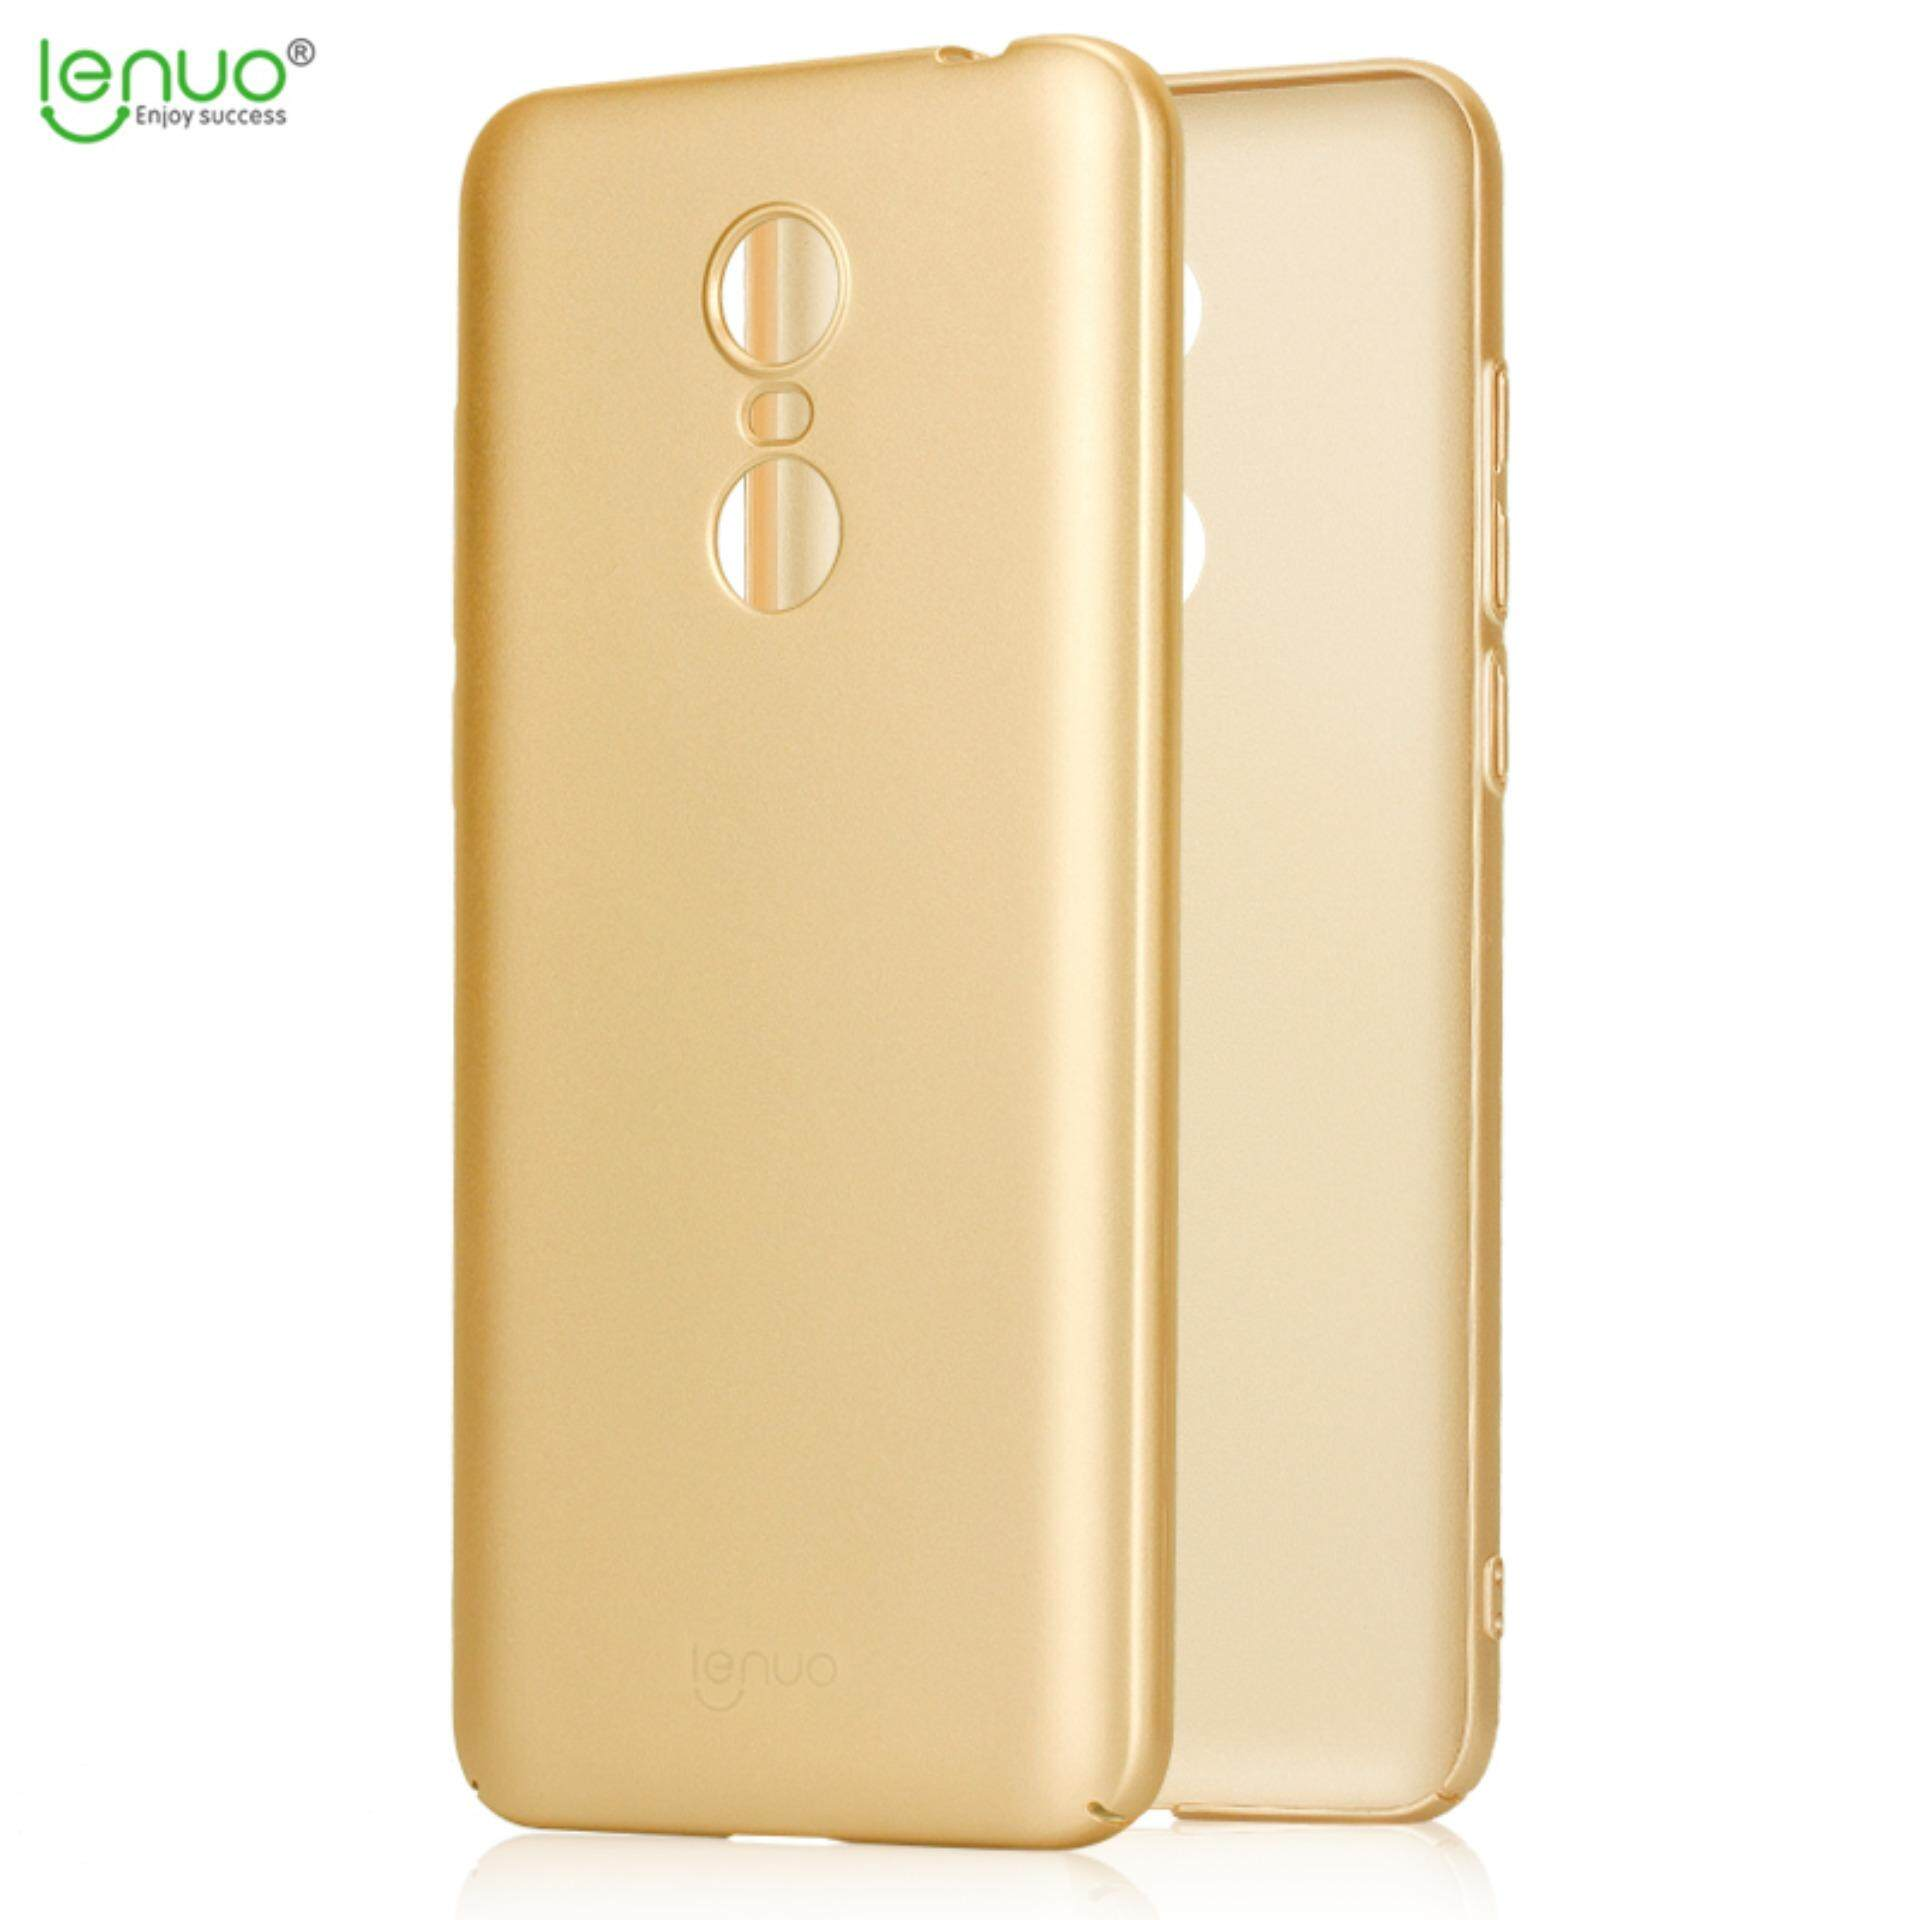 ... PC Exact Fit Ultra Slim Thin Handy Shield Shell Hard Back Case Protective Cover for Xiaomi Mi MIX 2 - Black - intl. Source · THB 238